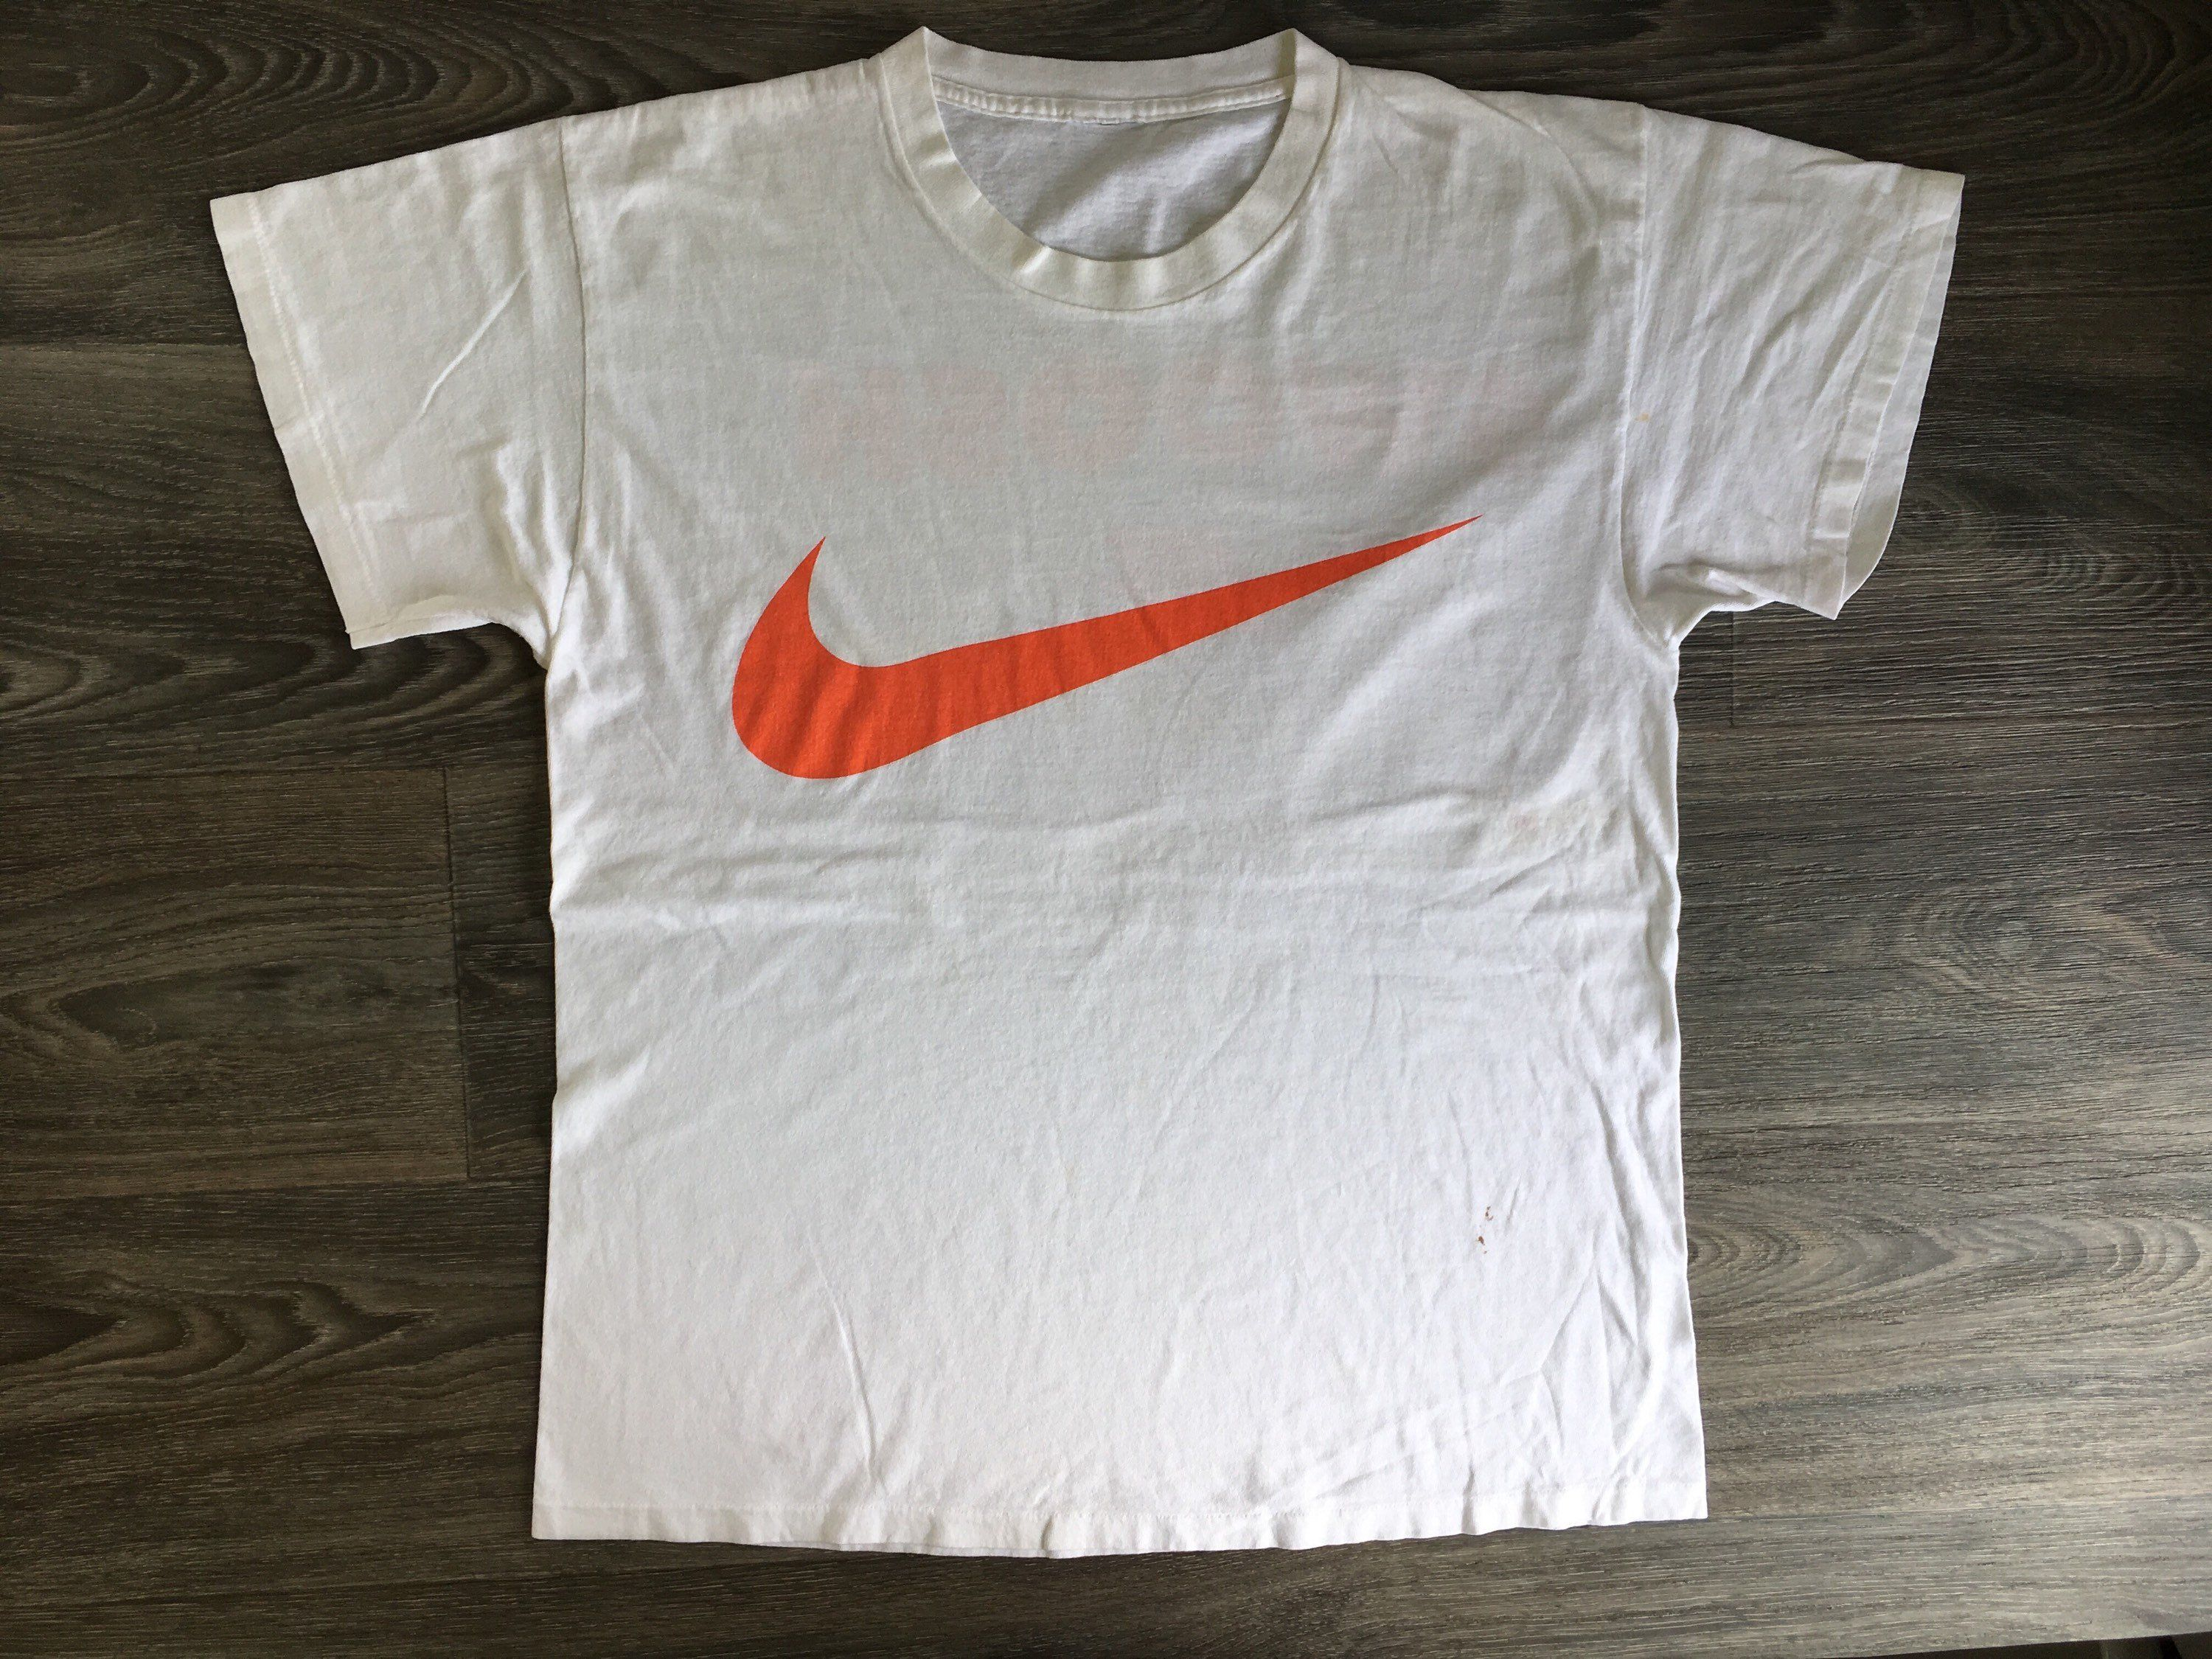 c1973cb1 NIKE Tshirt 90's Vintage Big Swoosh Shirt Giant Orange Double Sided White  Single Stitch Run Race Sports Tee Large by sweetVTGtshirt on Etsy